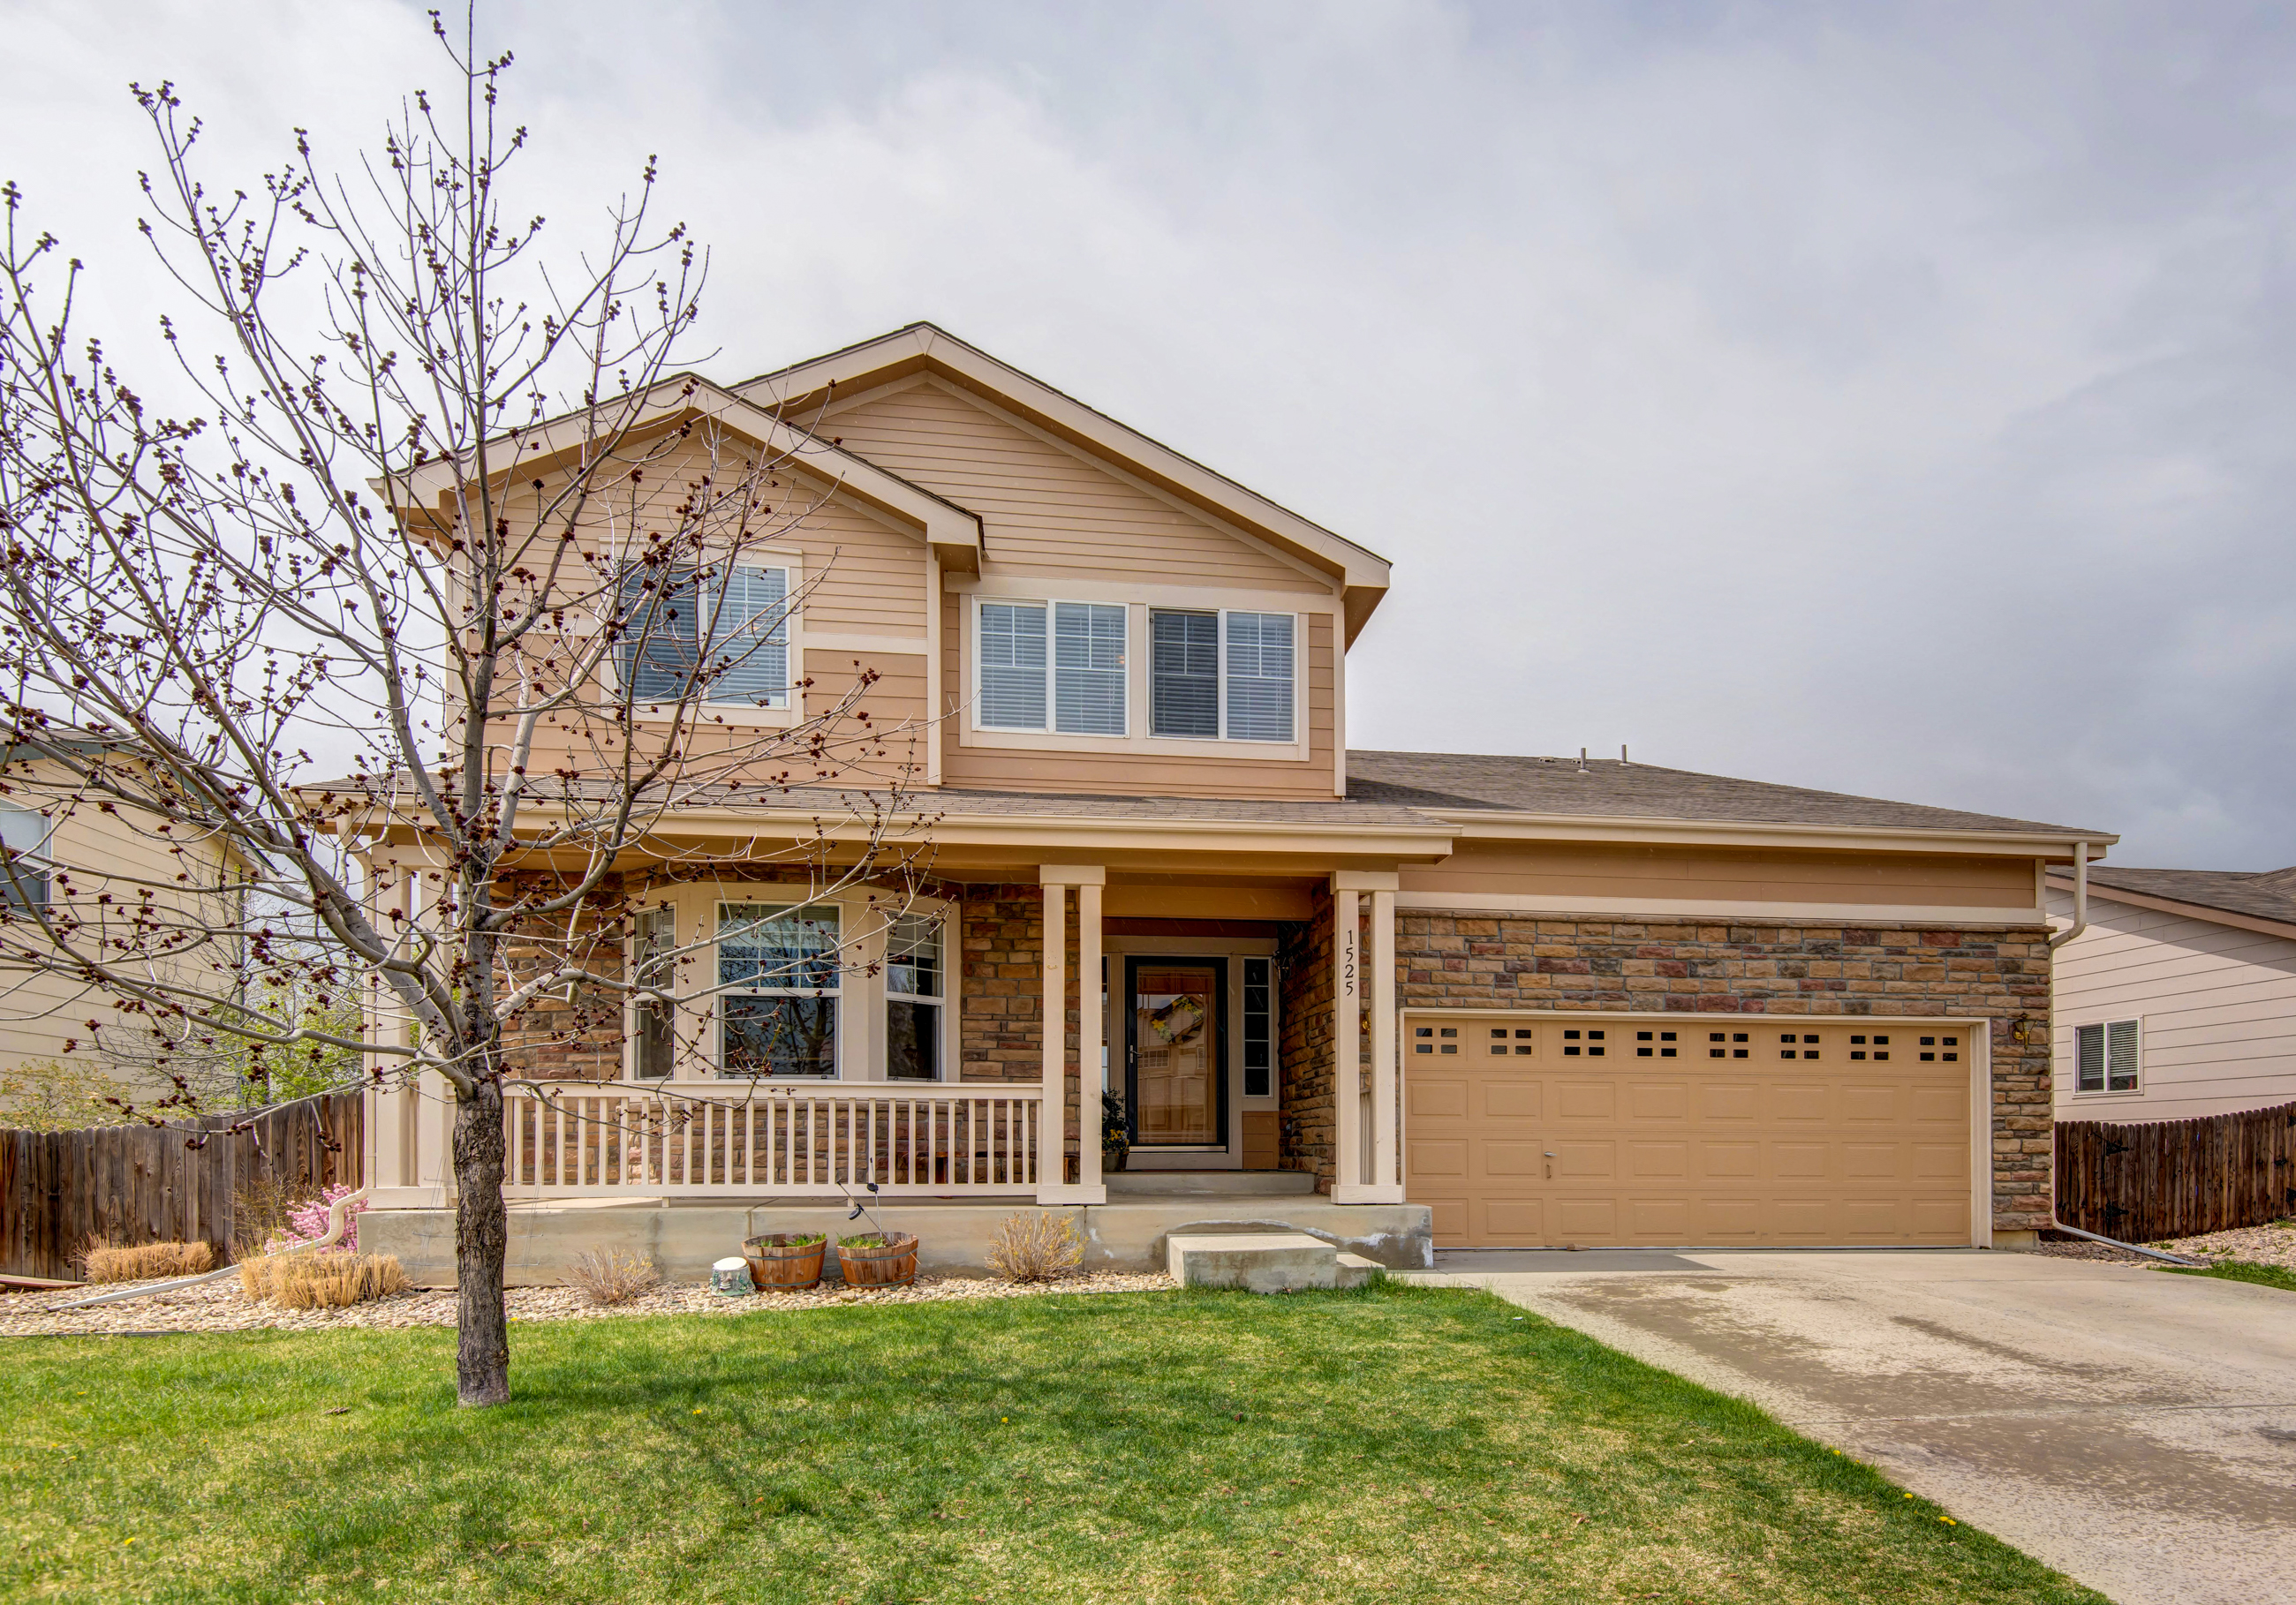 loveland home for sale sold fort collins real estate by angie spangler